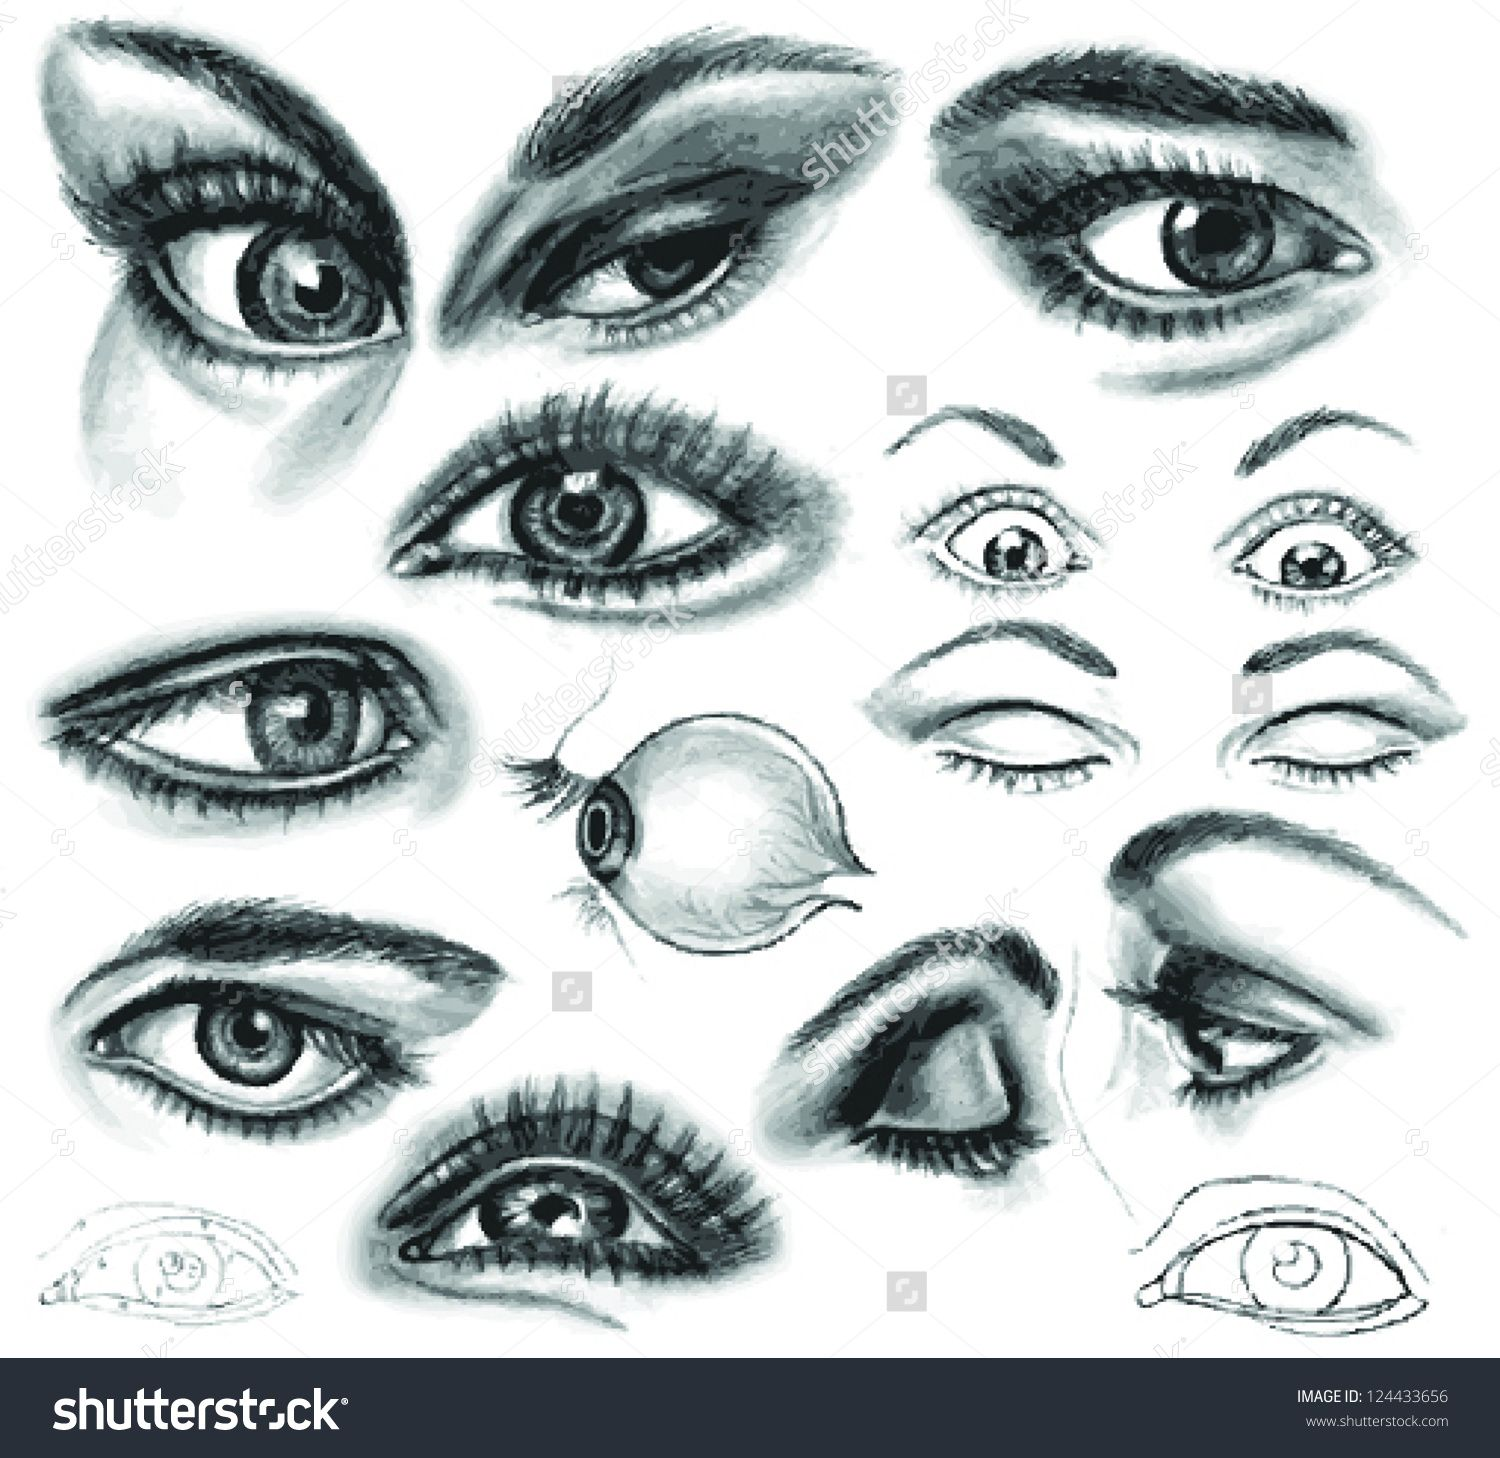 25 Amazing Drawings of Eyes Online Drawing Lessons ...